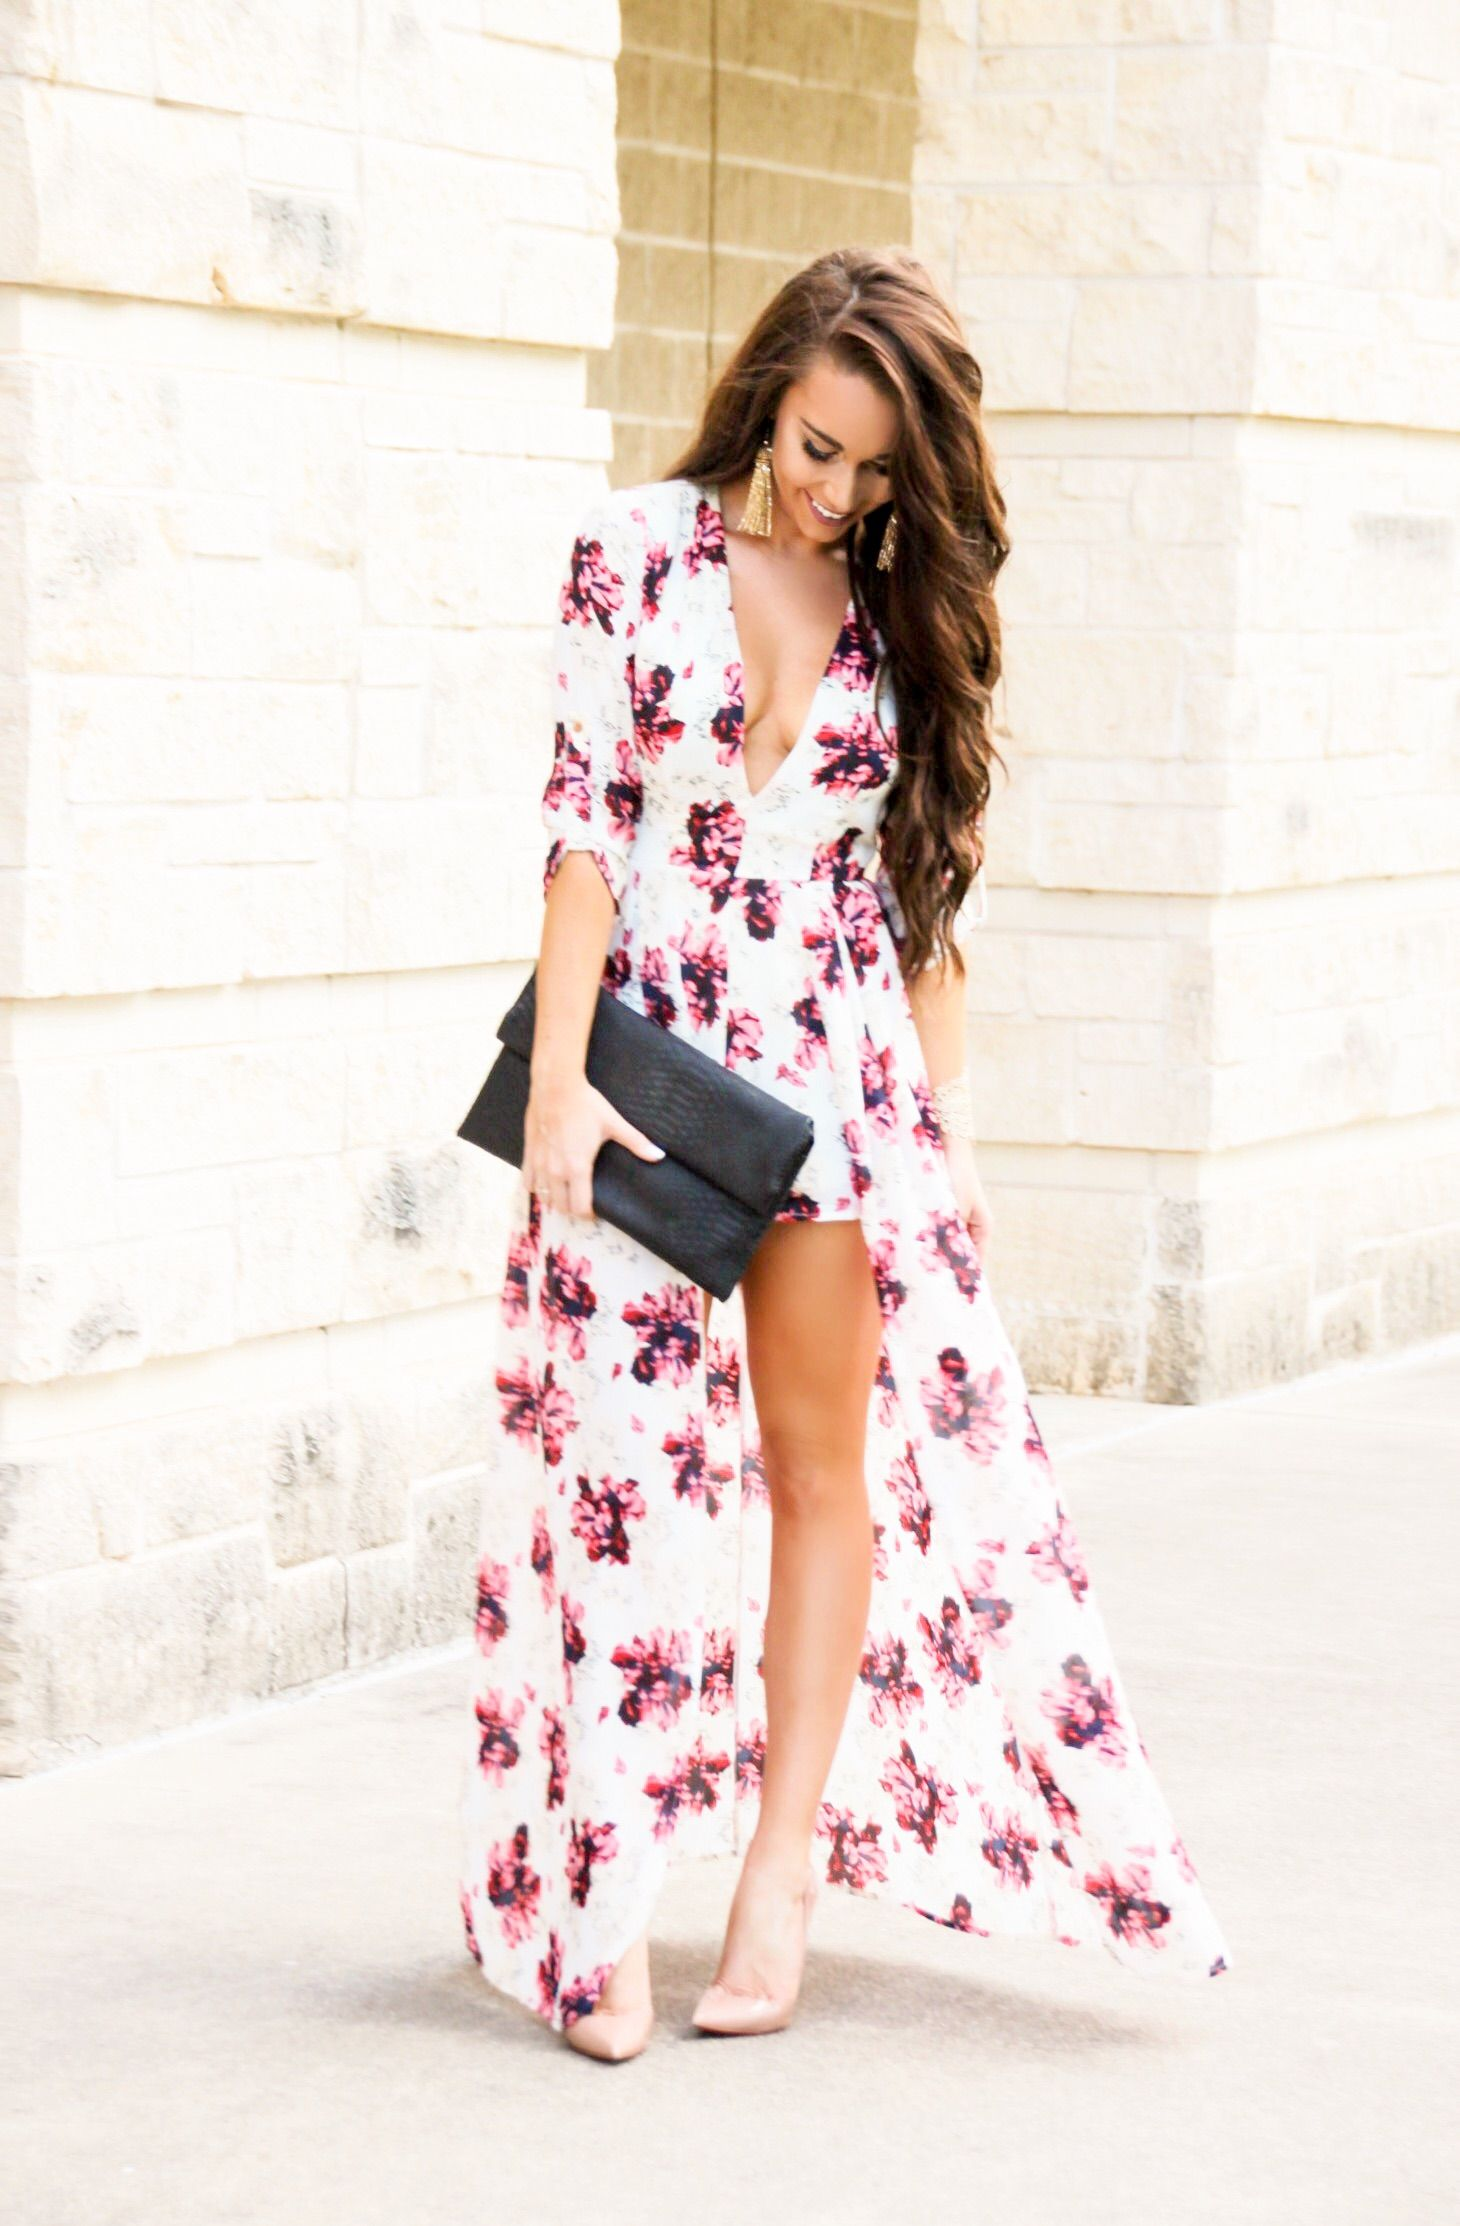 aa8e6faa7ab Floral Maxi Romper - Sunshine   Stilettos Blog (Instagram   katlynmaupin)